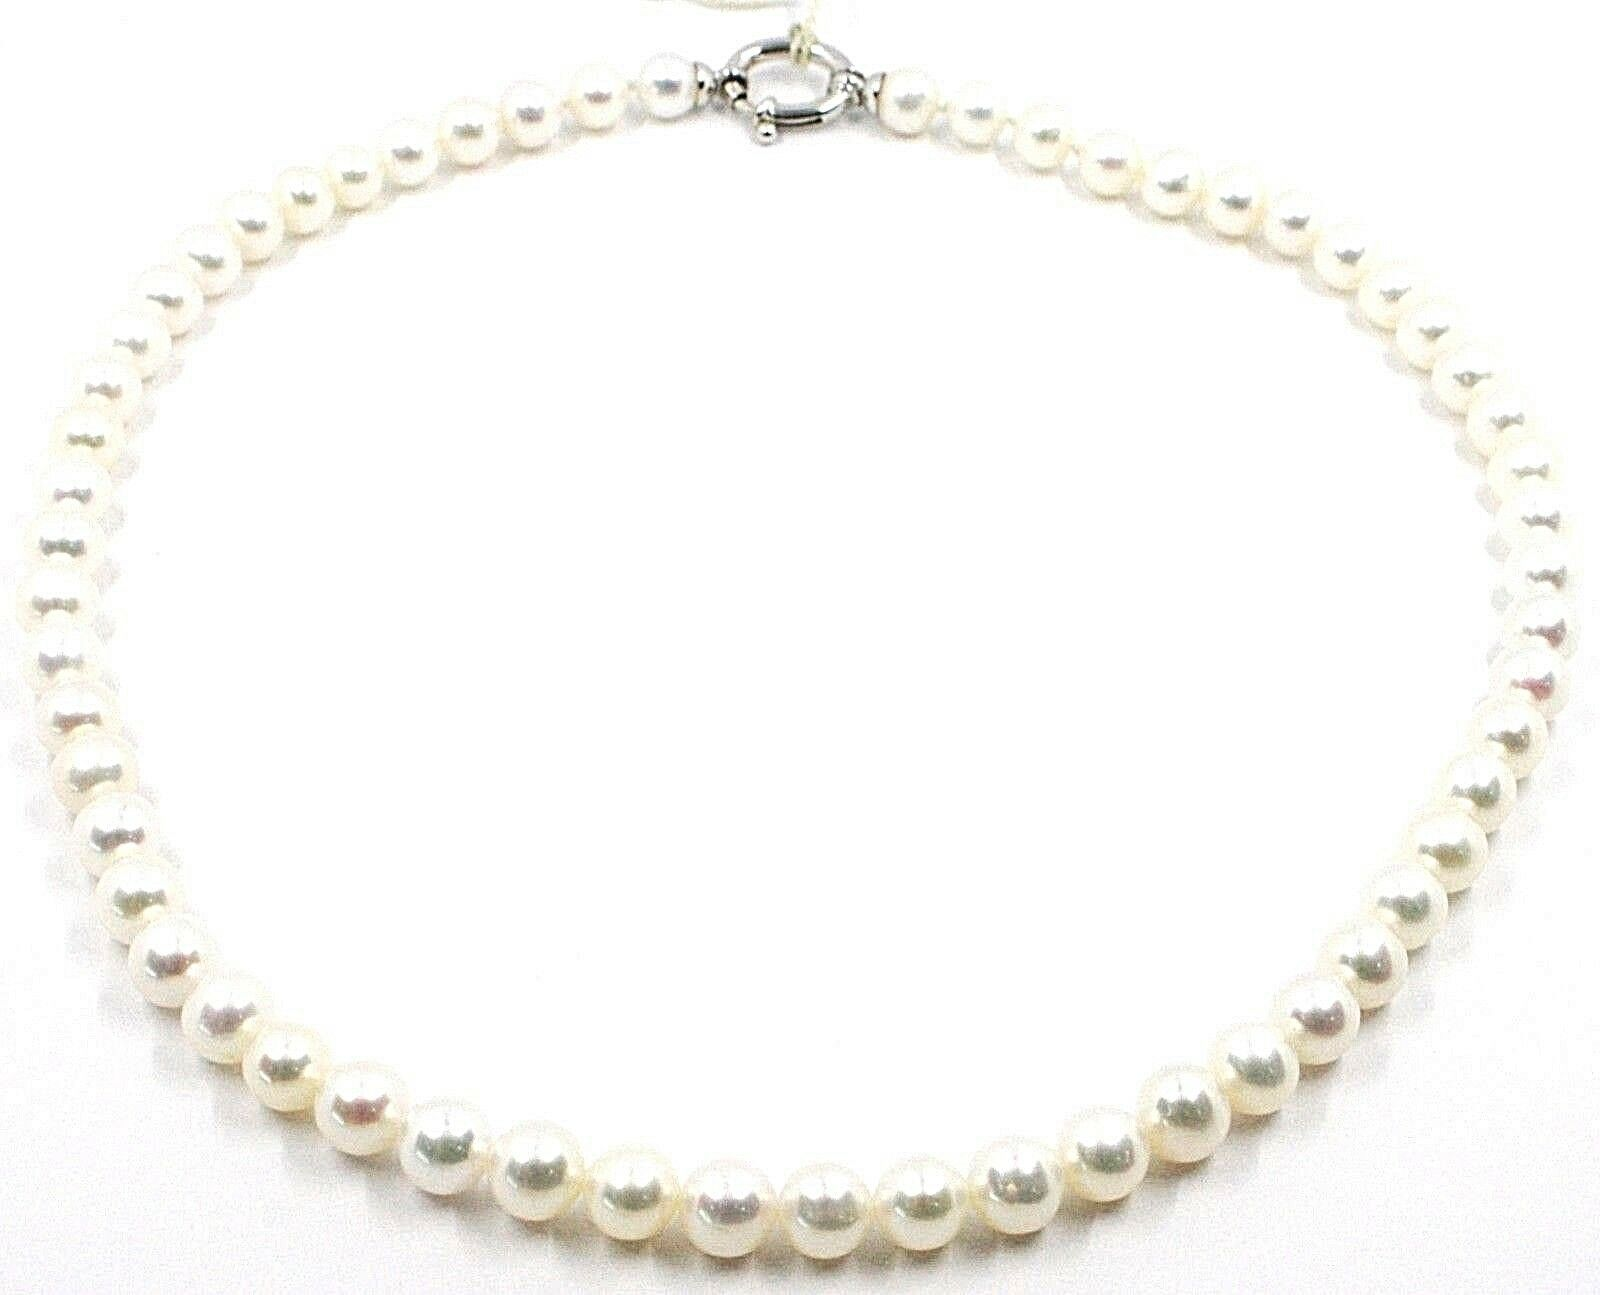 Necklace, Closing Ring Oval White Gold 18K, White Pearls 7-7.5 MM